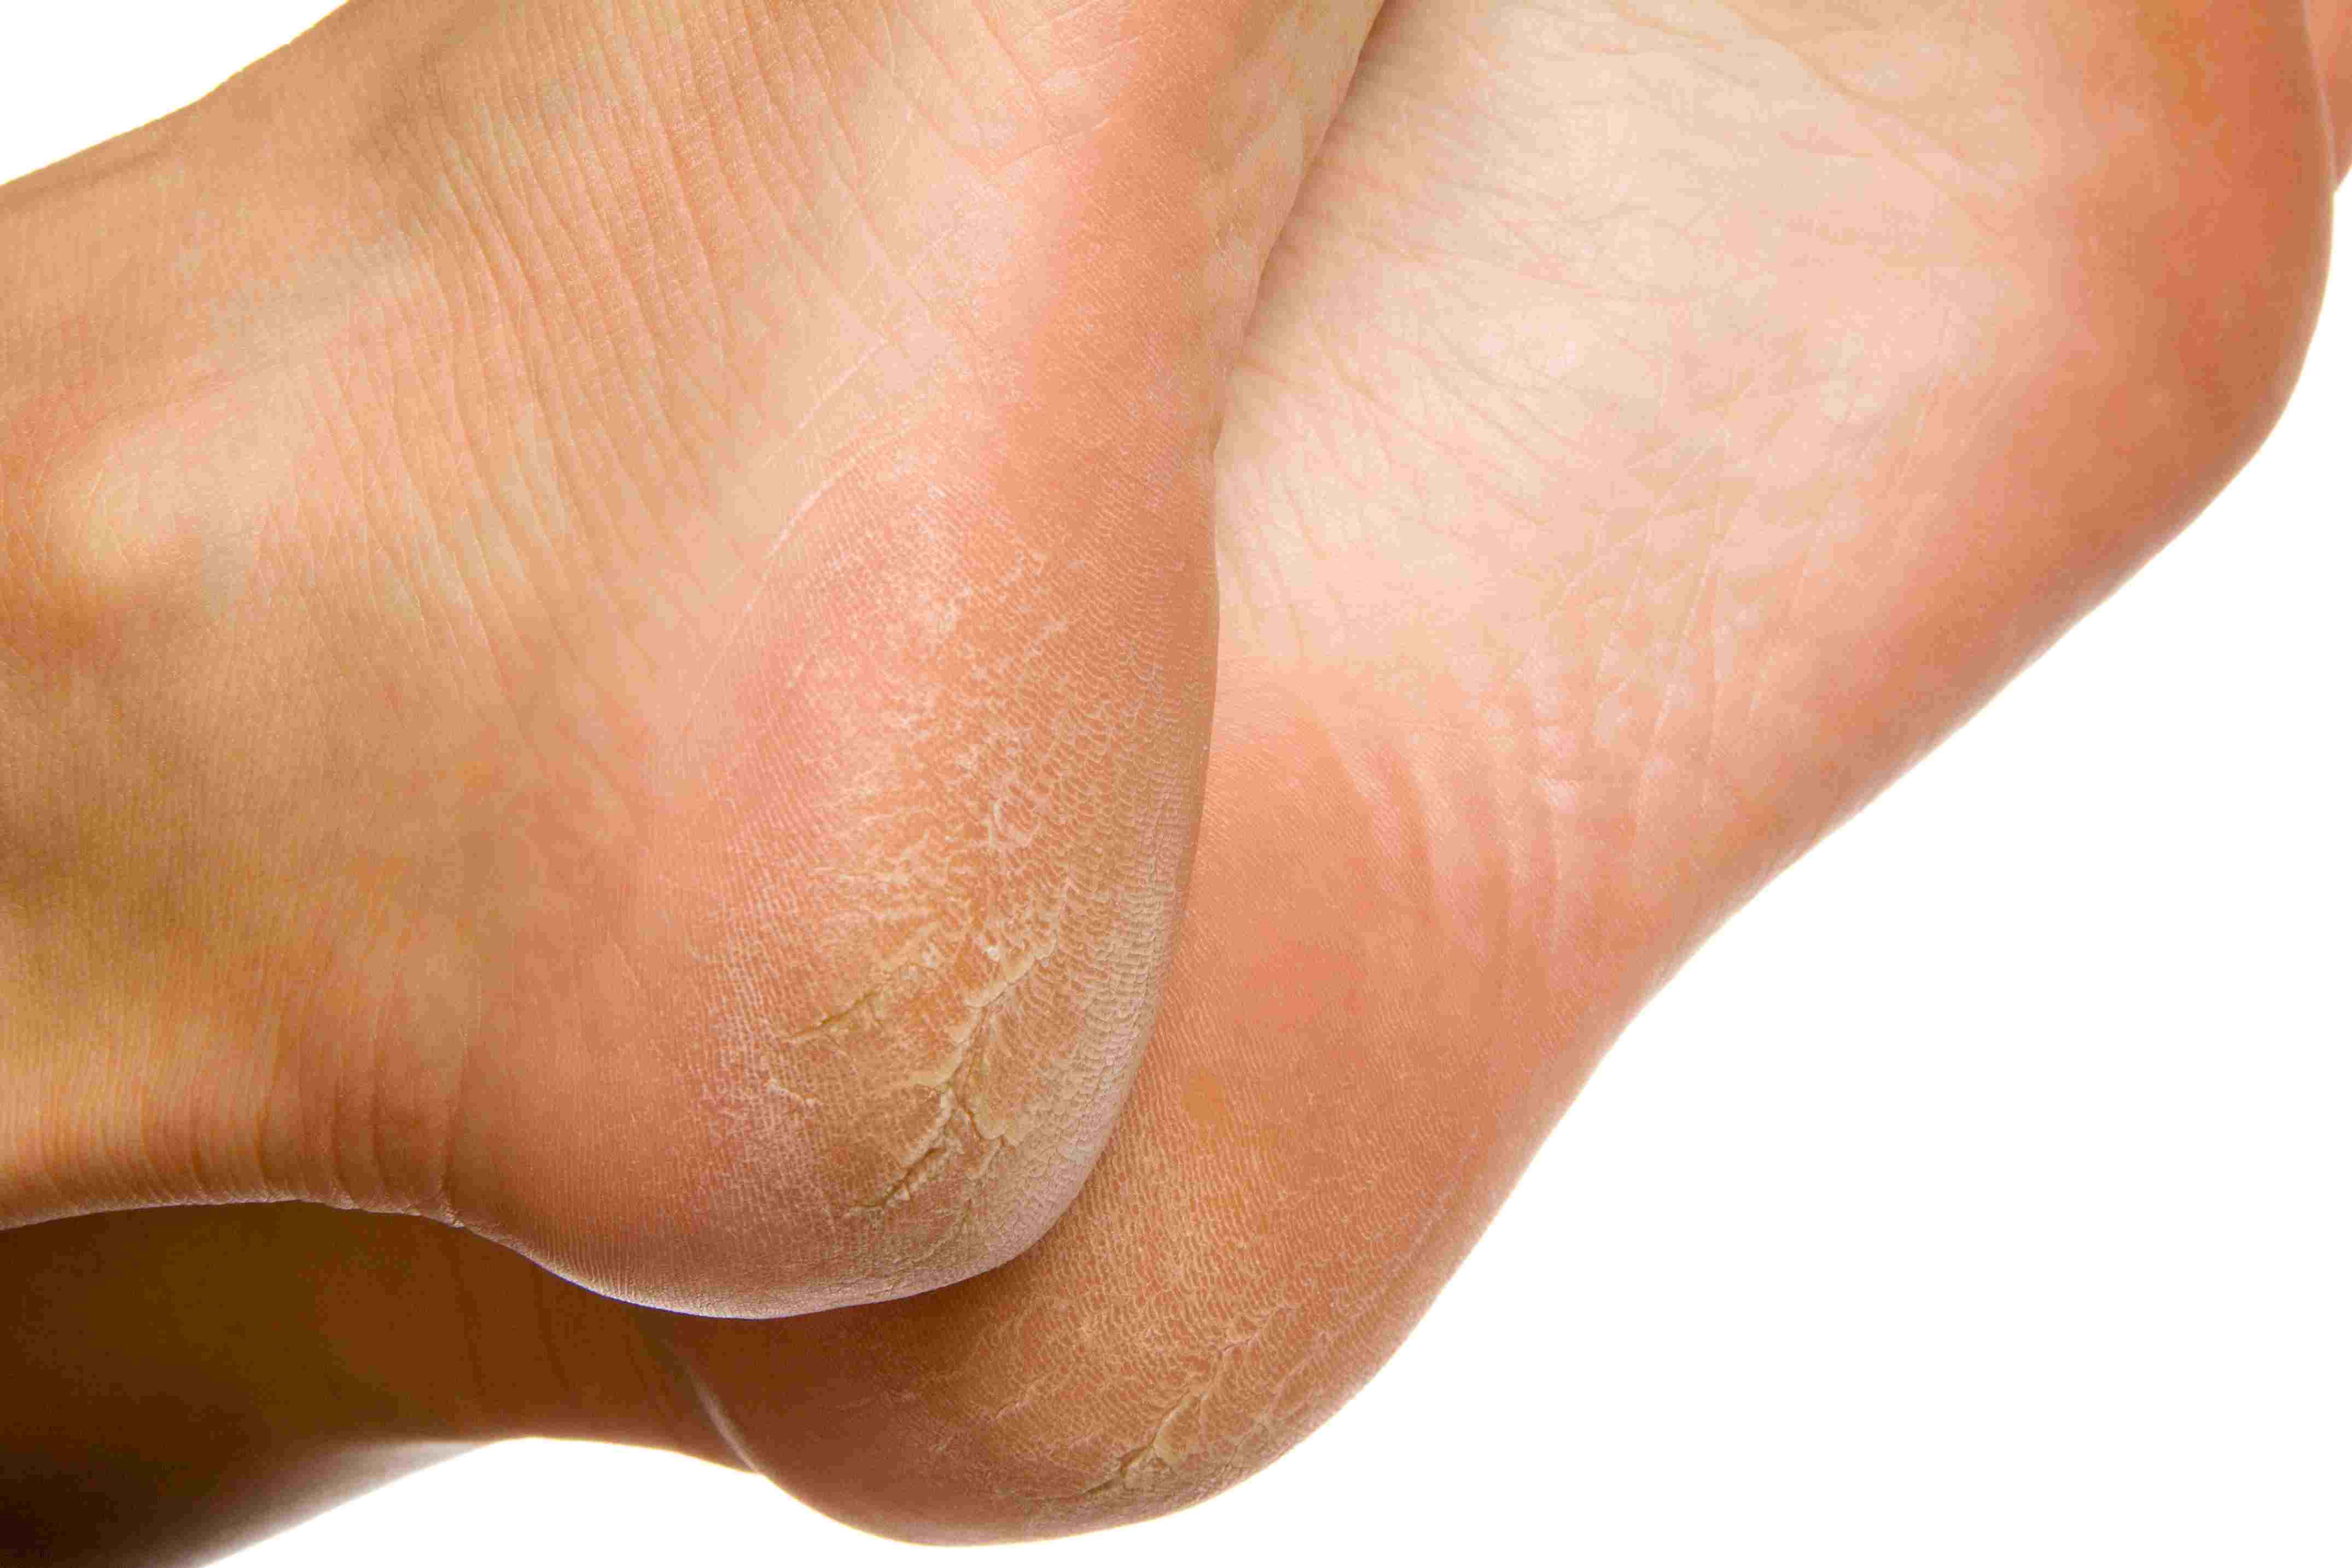 wart on foot that hurts